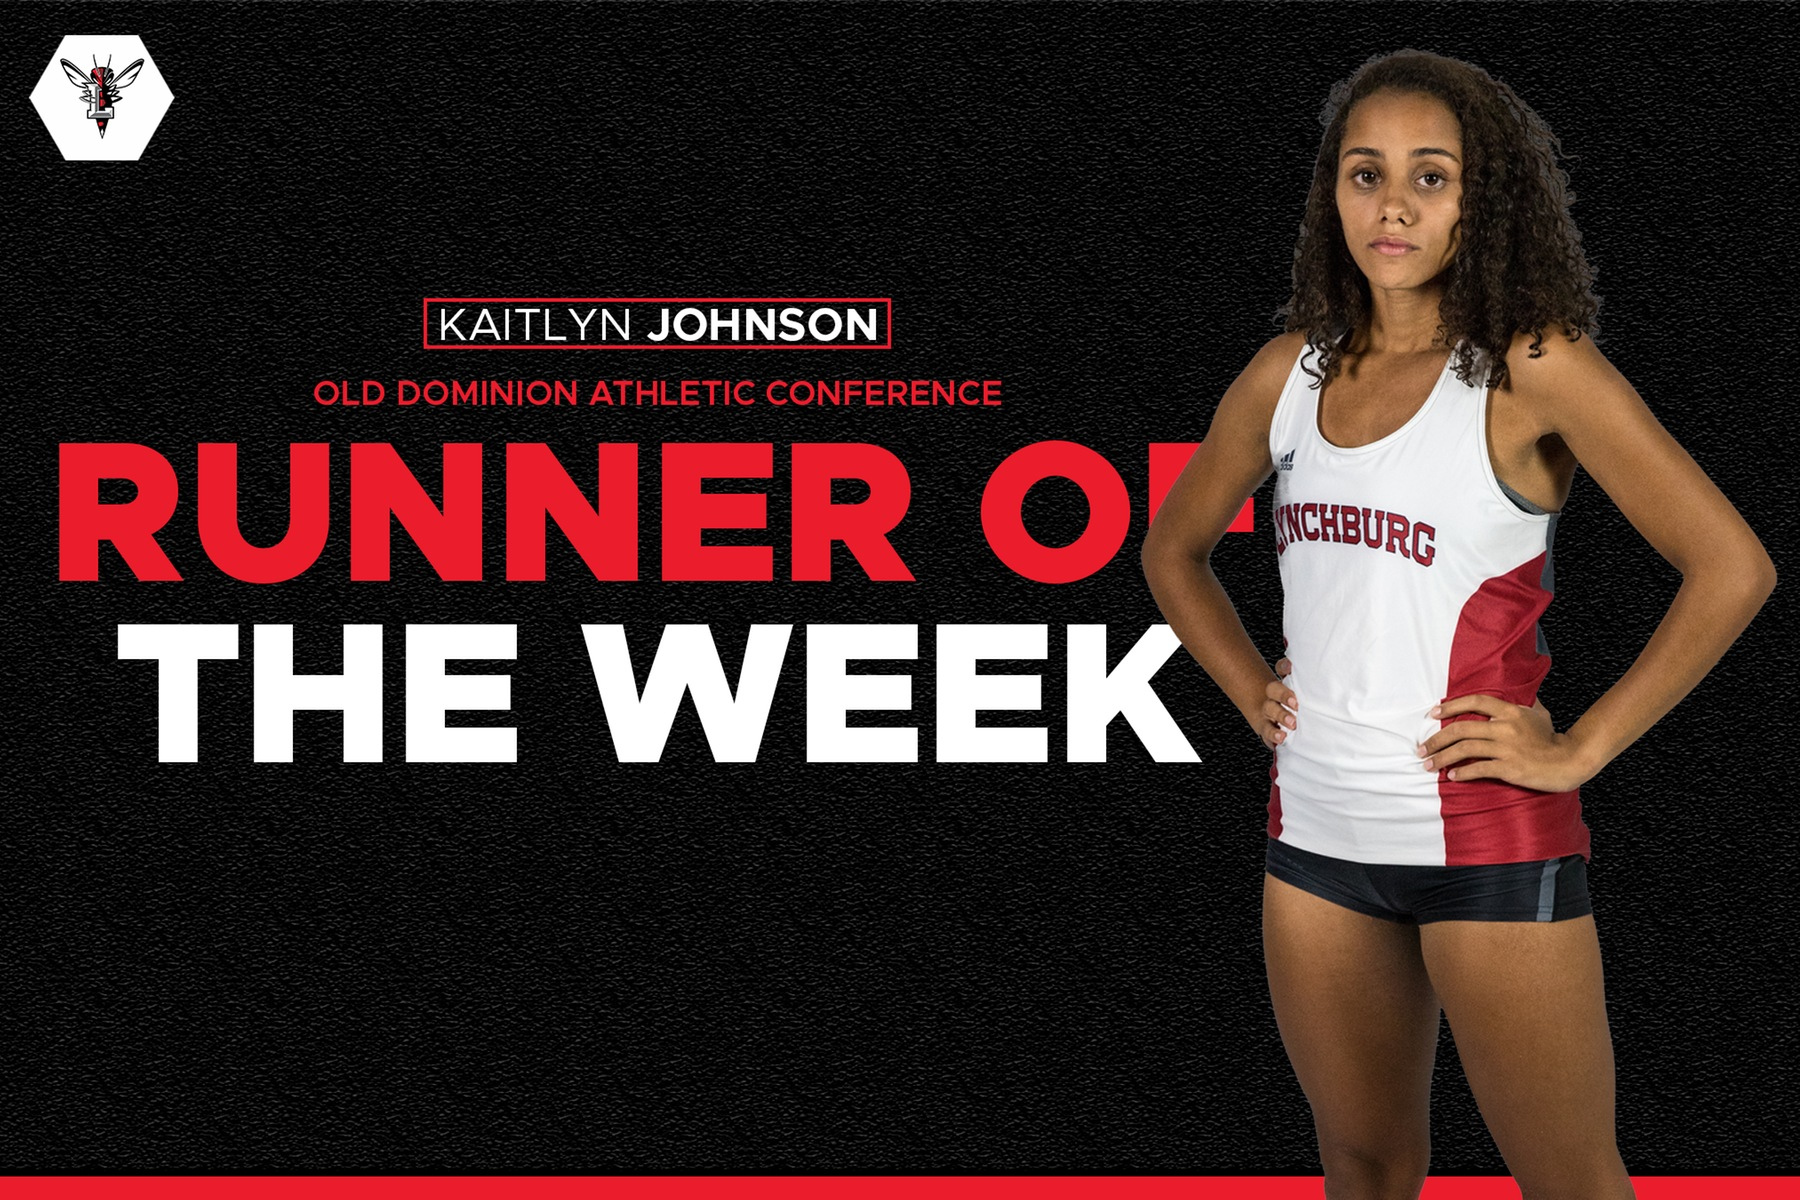 Photo of Kaitlyn Johnson standing with hands on her hips over black background. Text: ODAC runner of the week